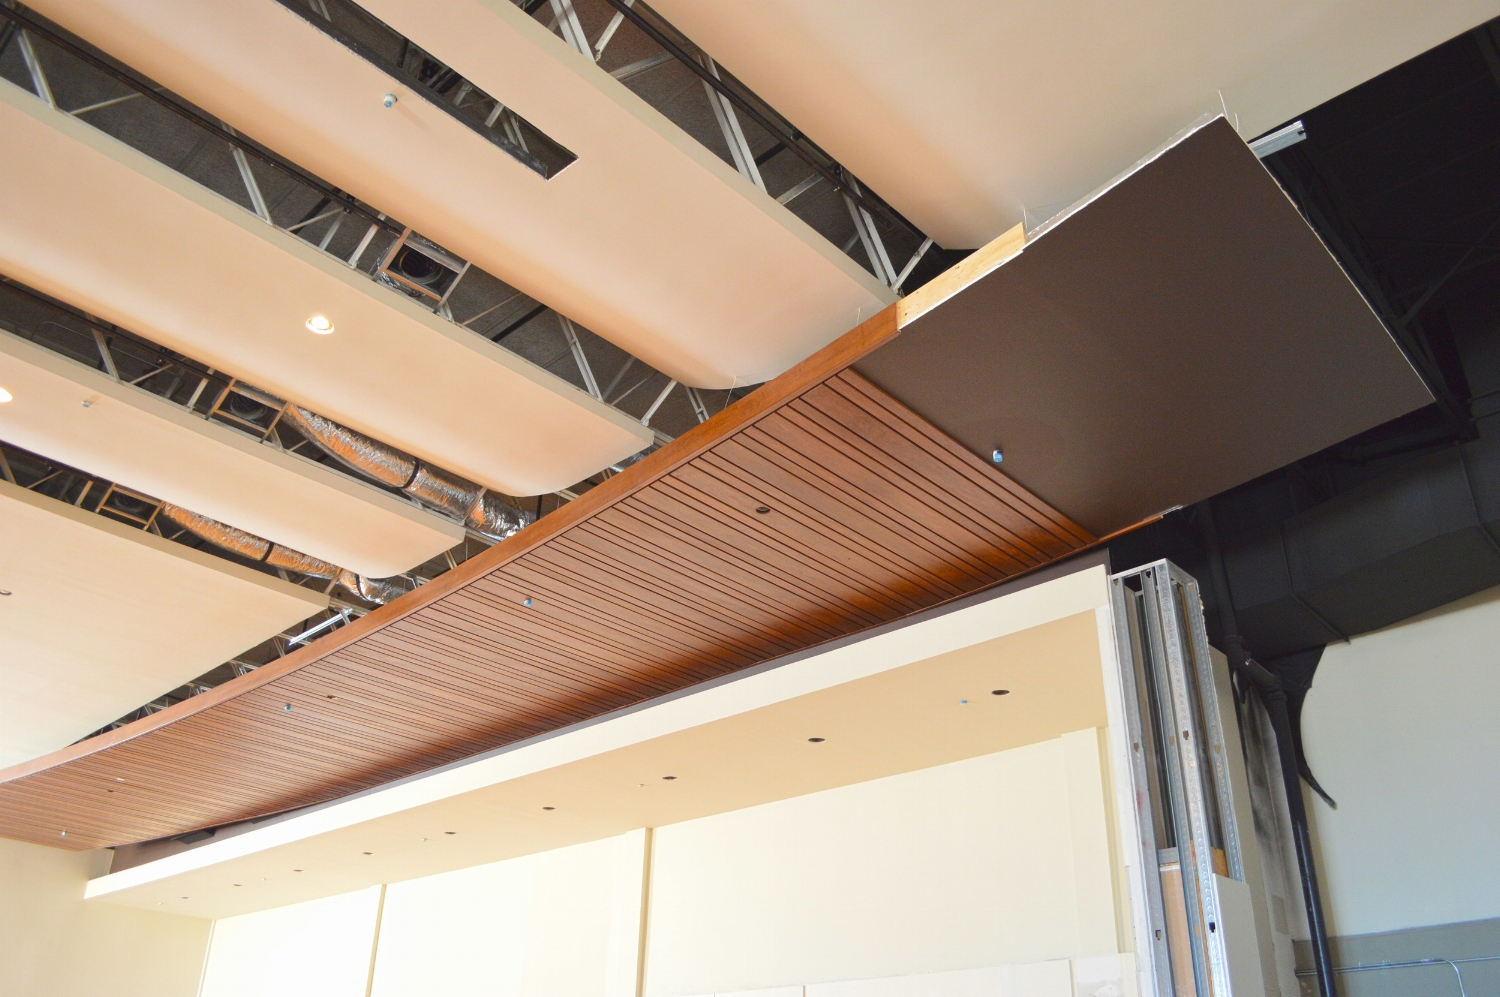 Lighting will be installed between the scalloped ceiling reveals in the Sanctuary. The wood slats serve as one of the mechanical distribution devices for this acoustically sensitive space.